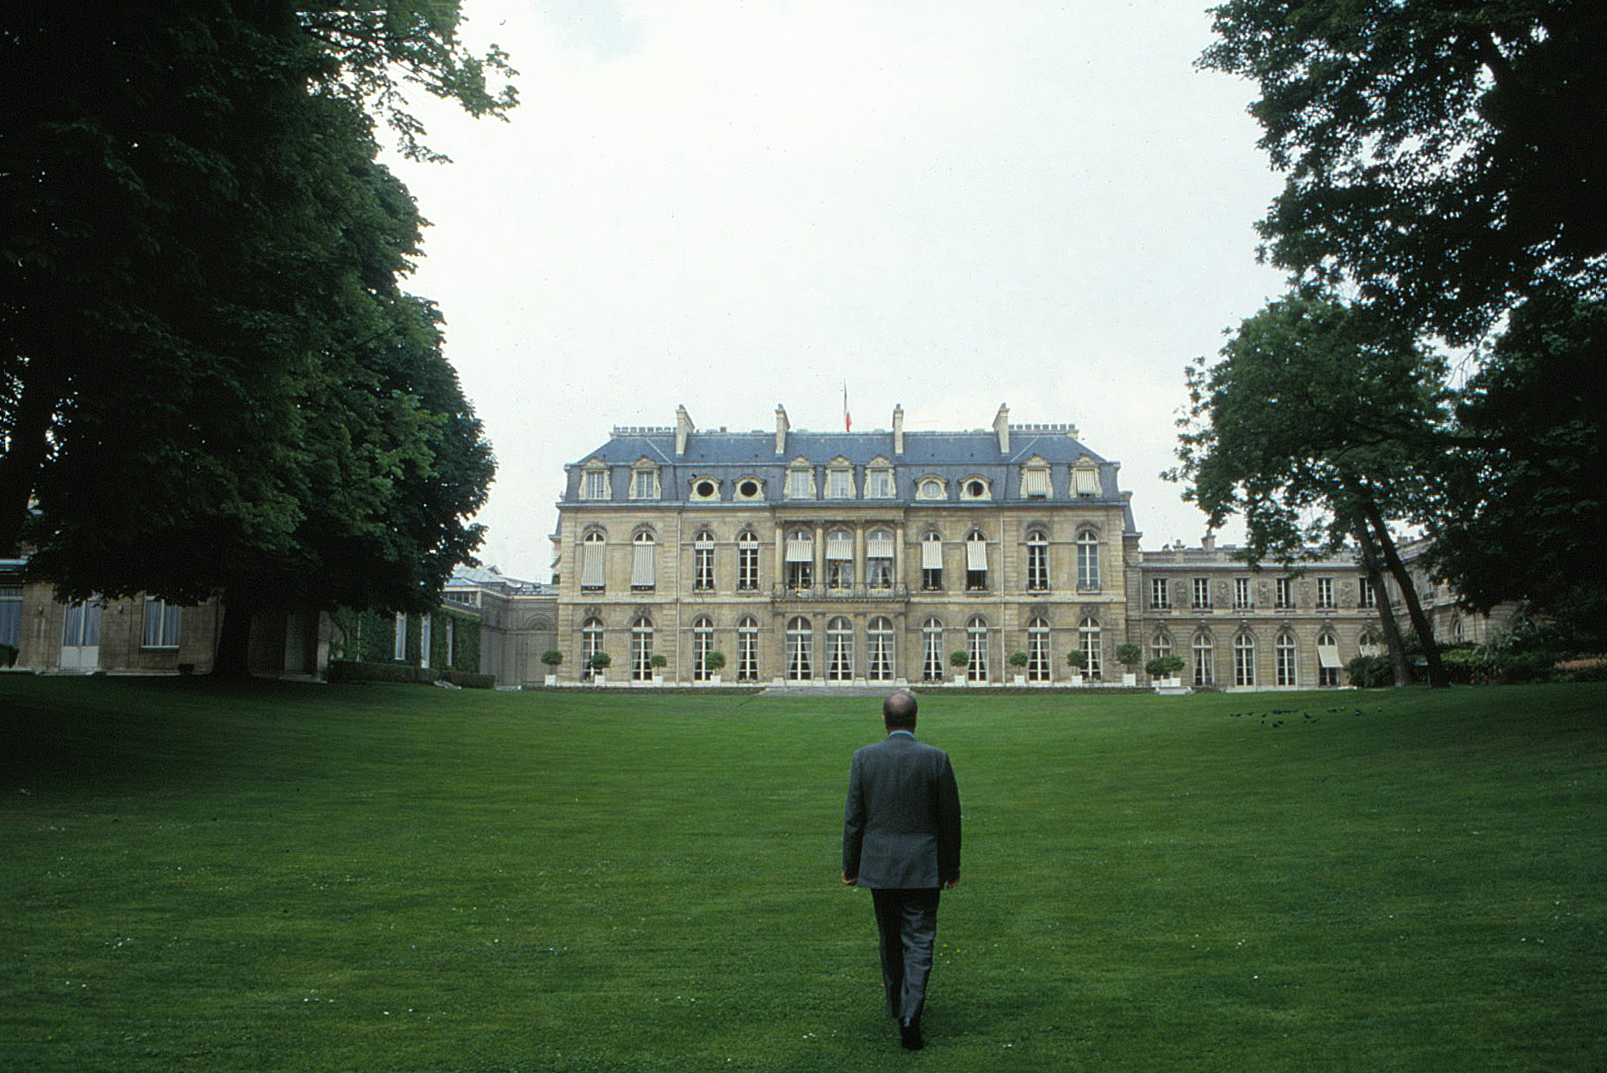 President MItterrand at the Elysee Palace gardens